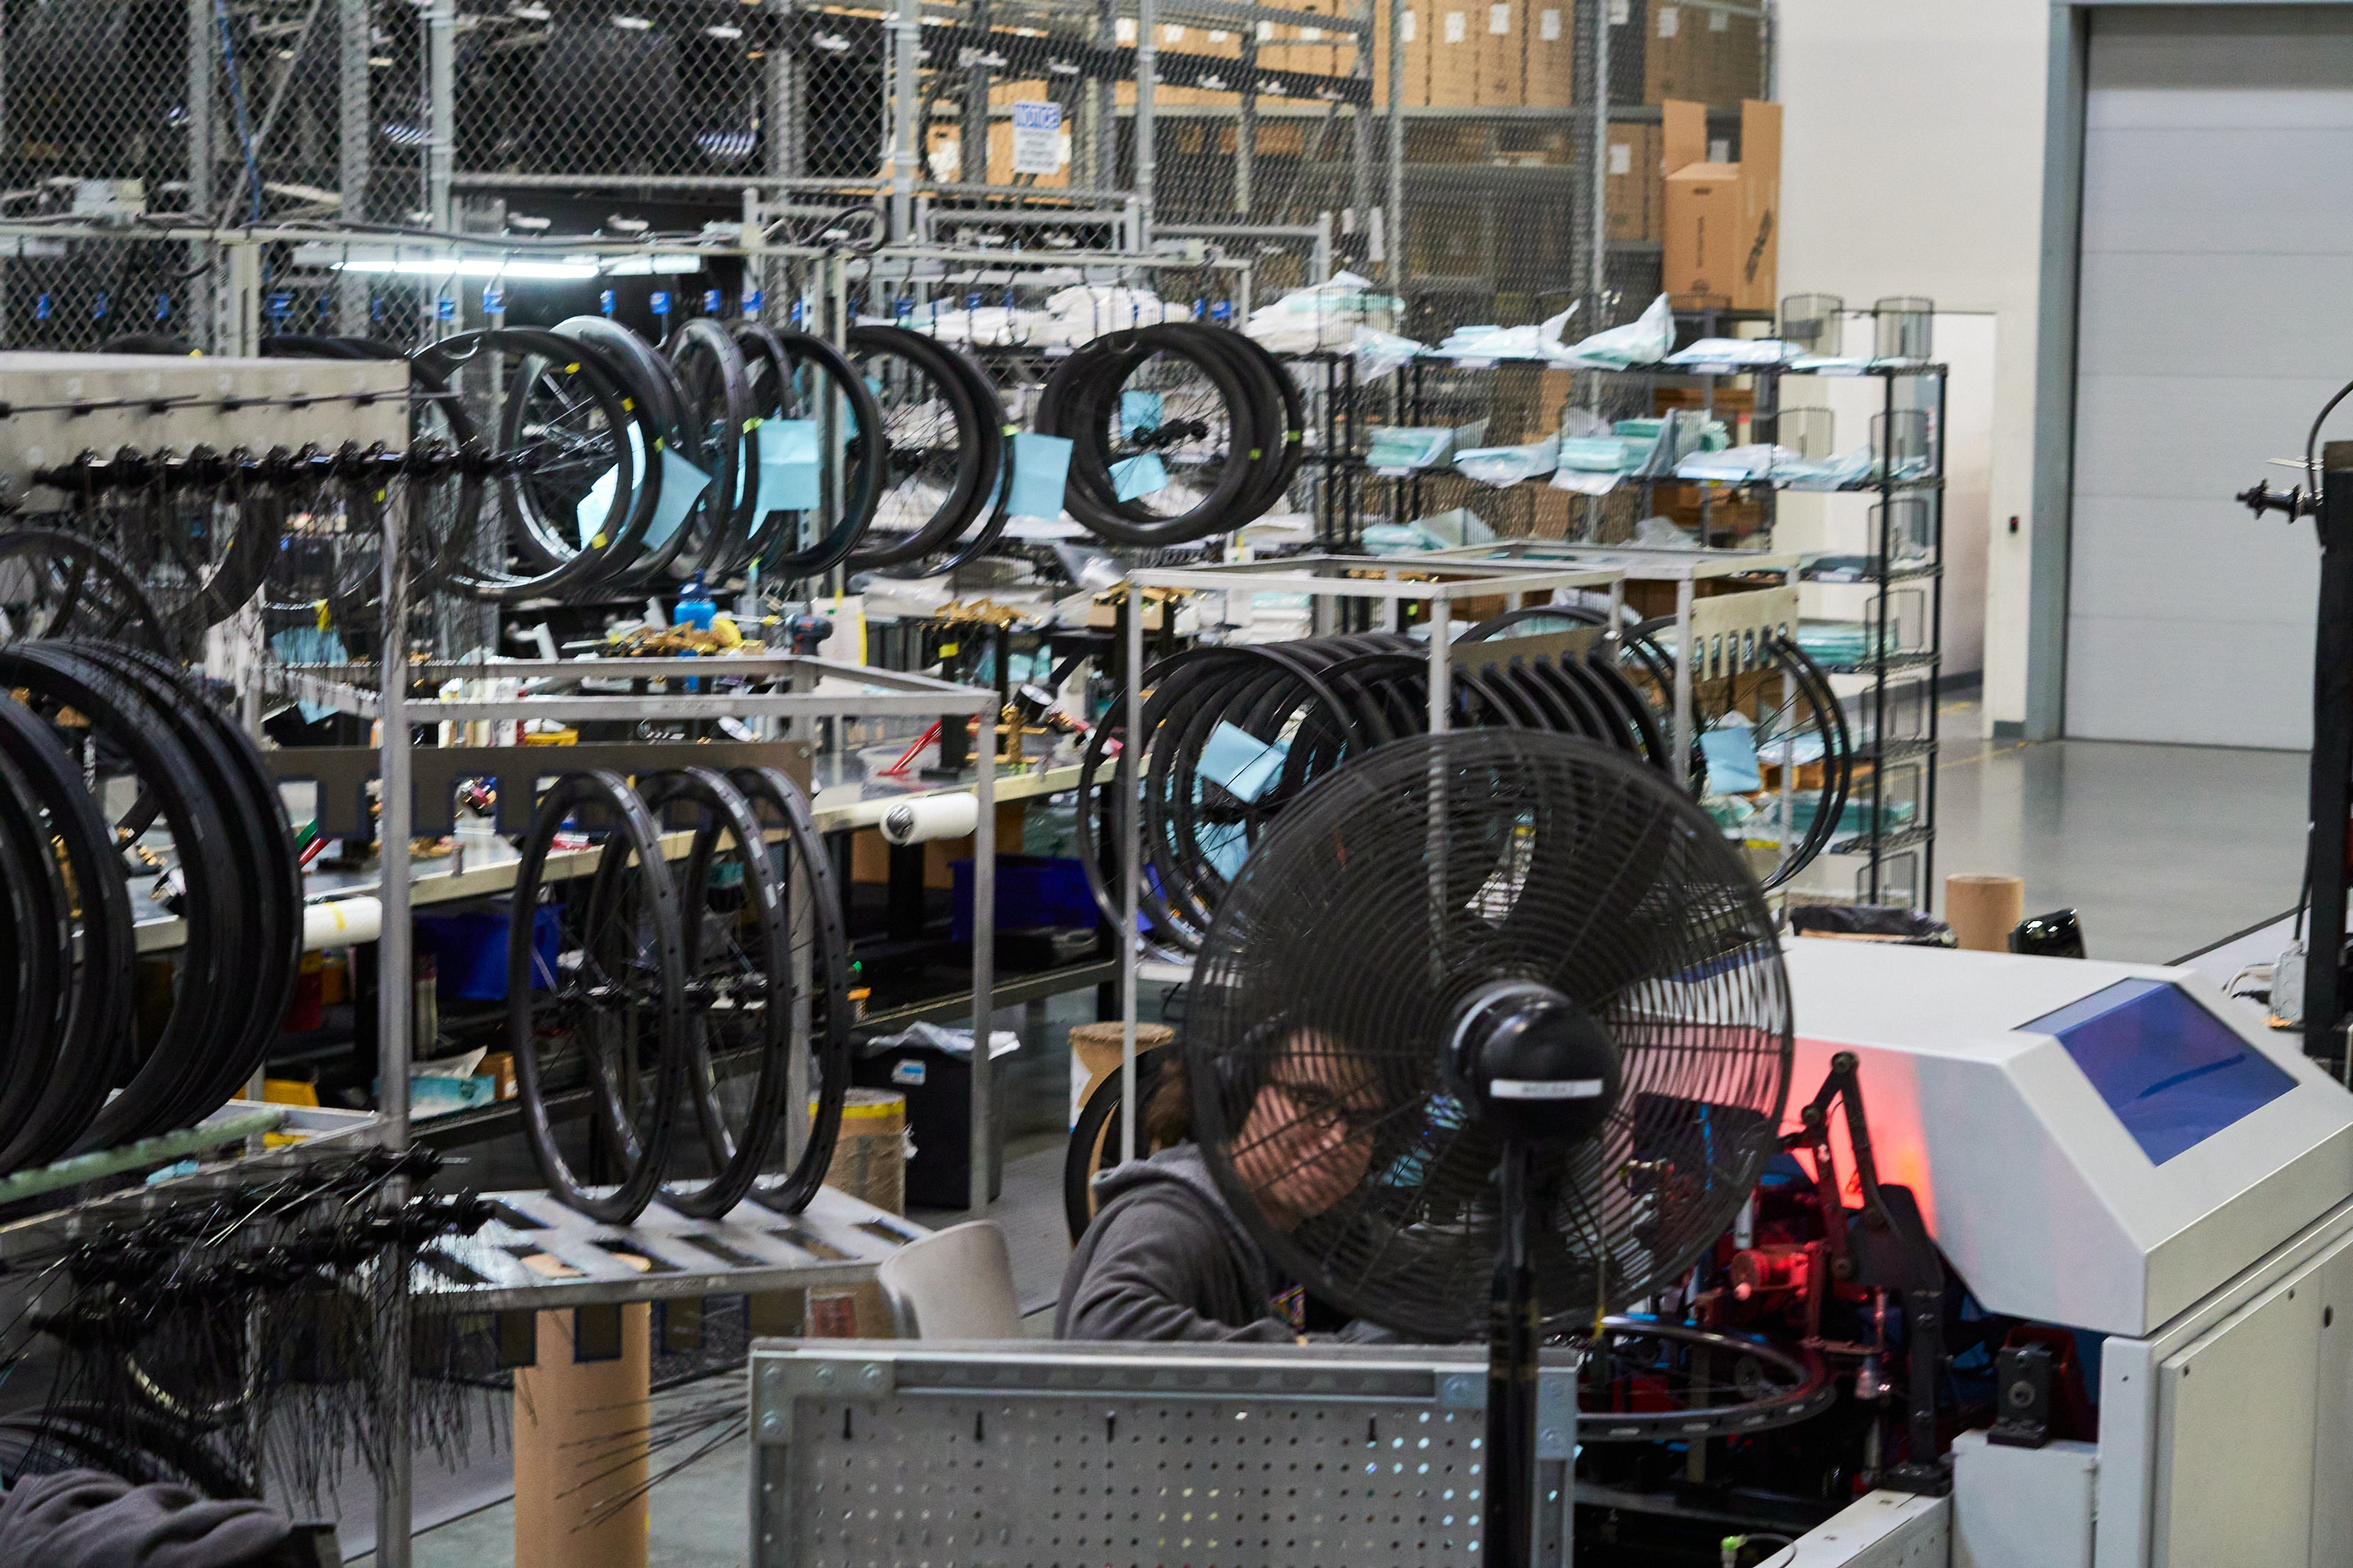 ENVE Factory tour with Contender Bicycles - final manufacturing